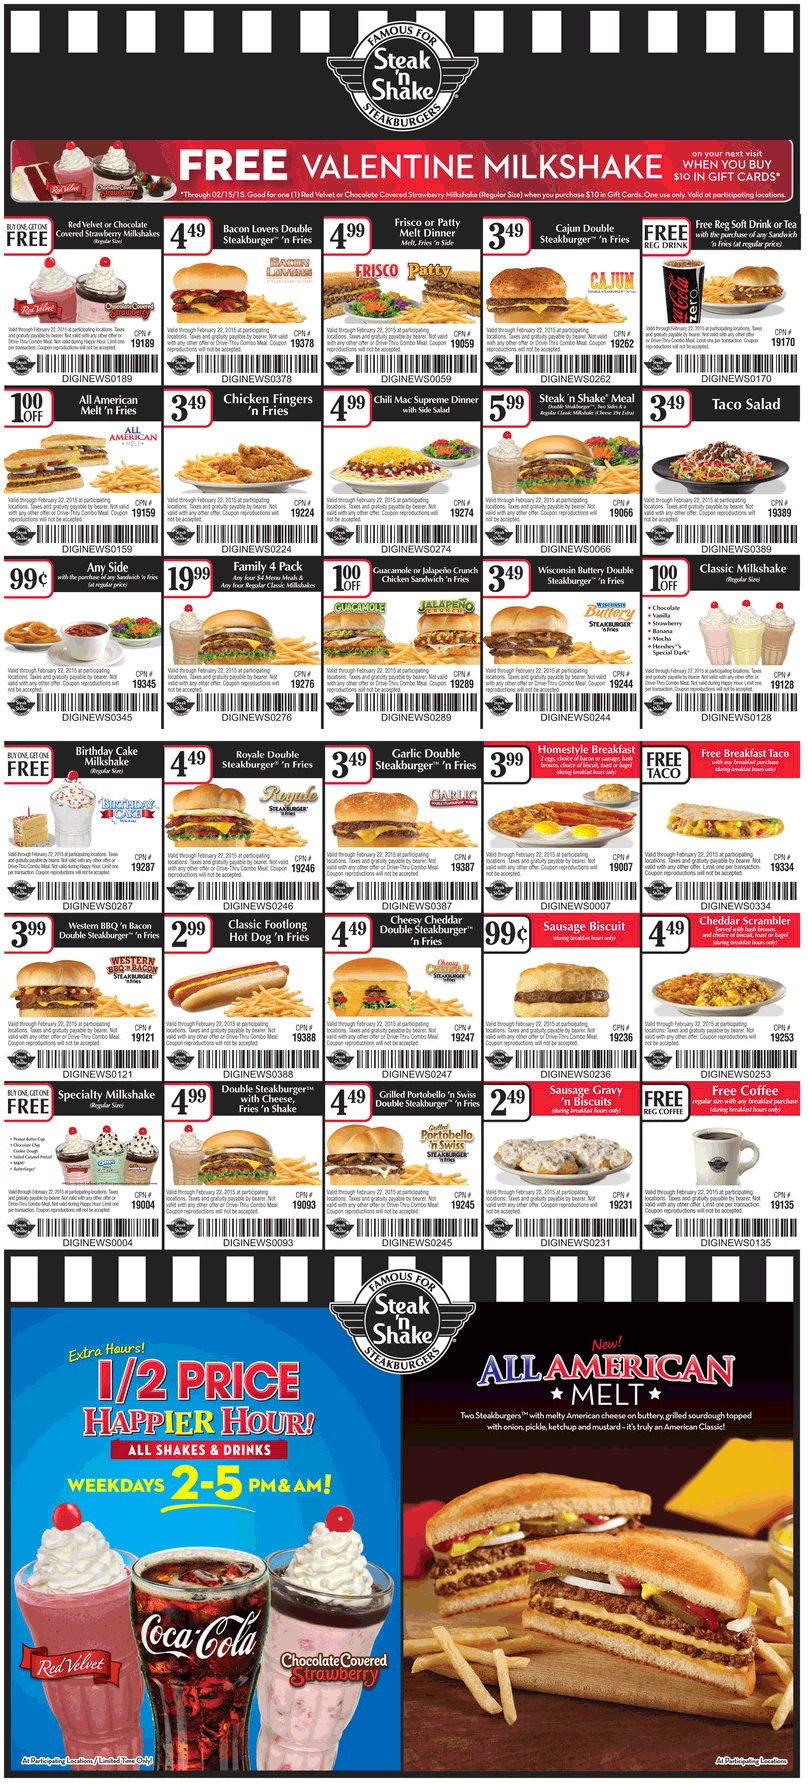 image regarding Steak and Shake Coupons Printable known as Steak and shake discount codes on line - The vacation resort at the mountain